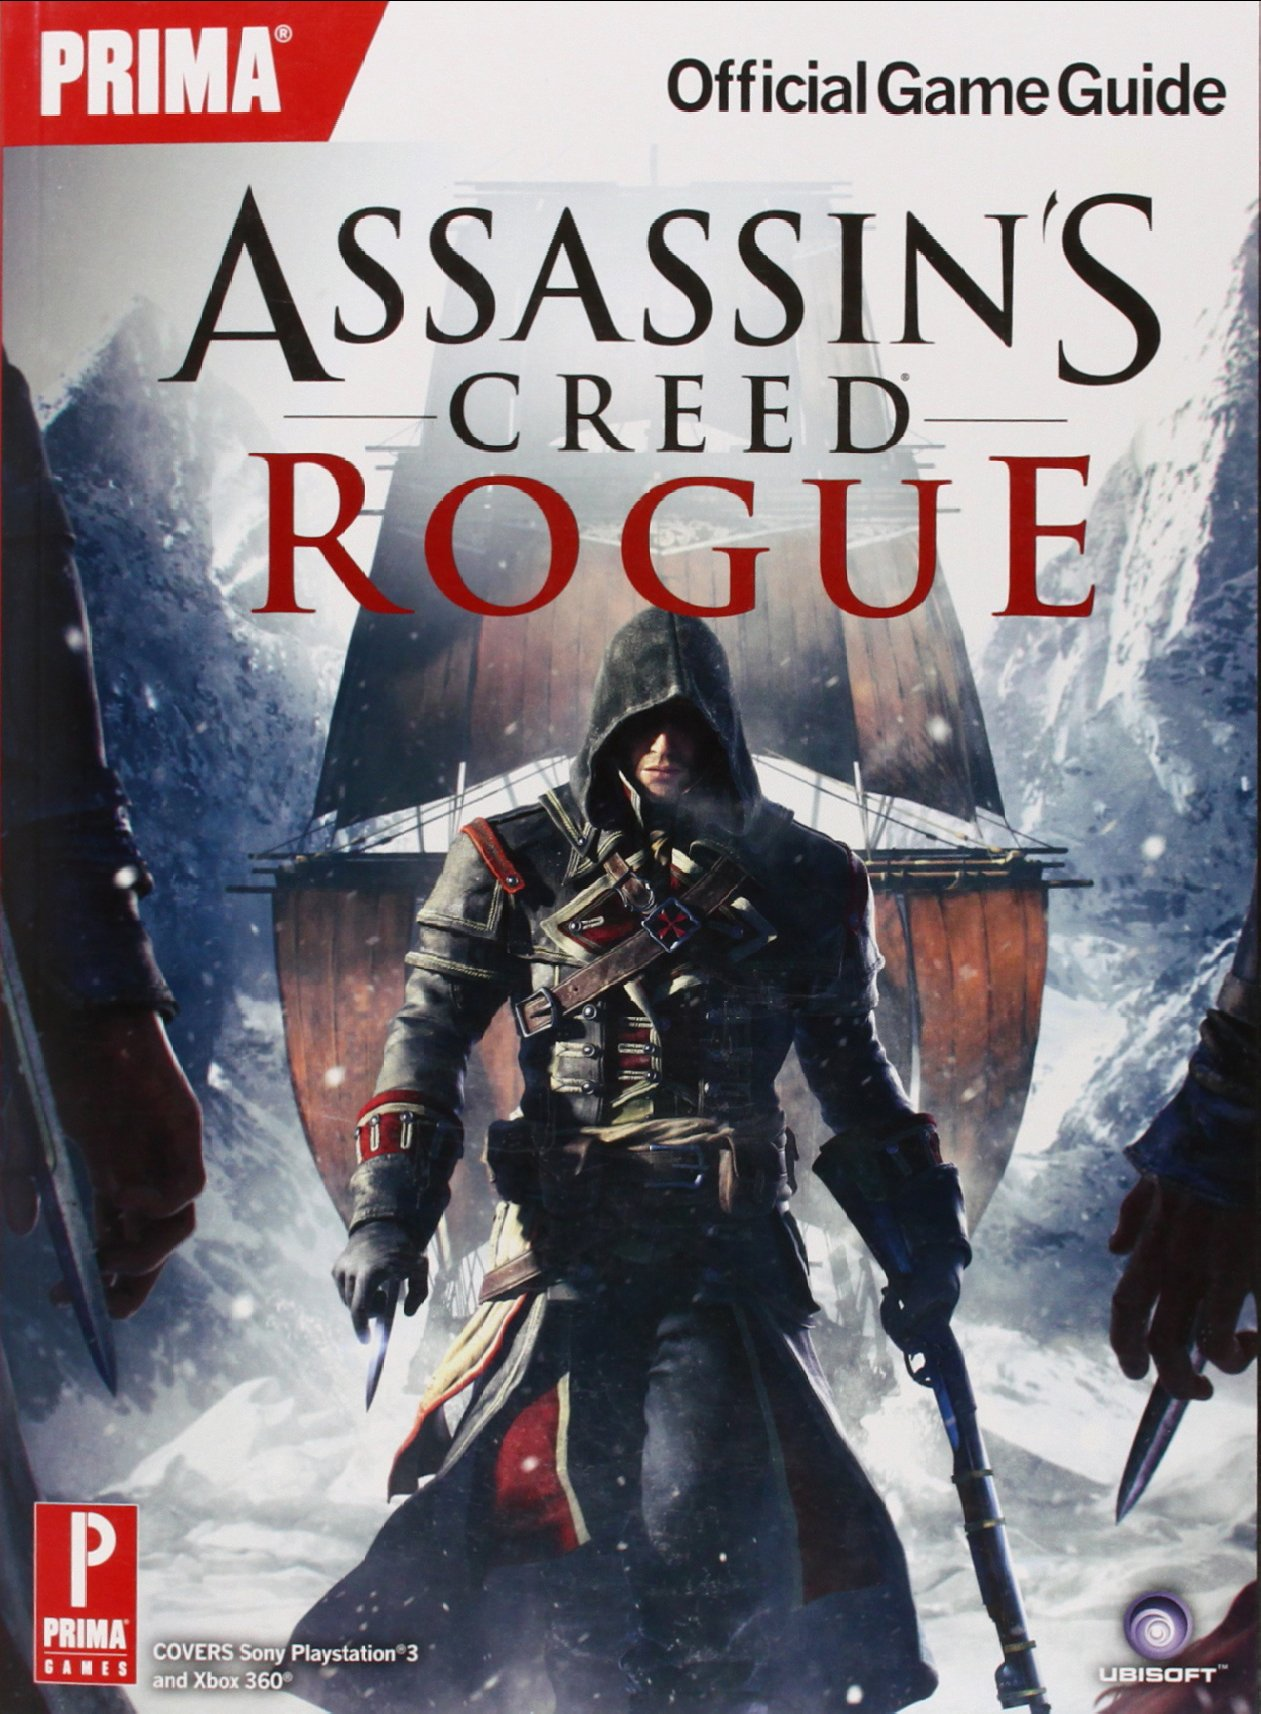 Assassins Creed Rogue Official Game Guide